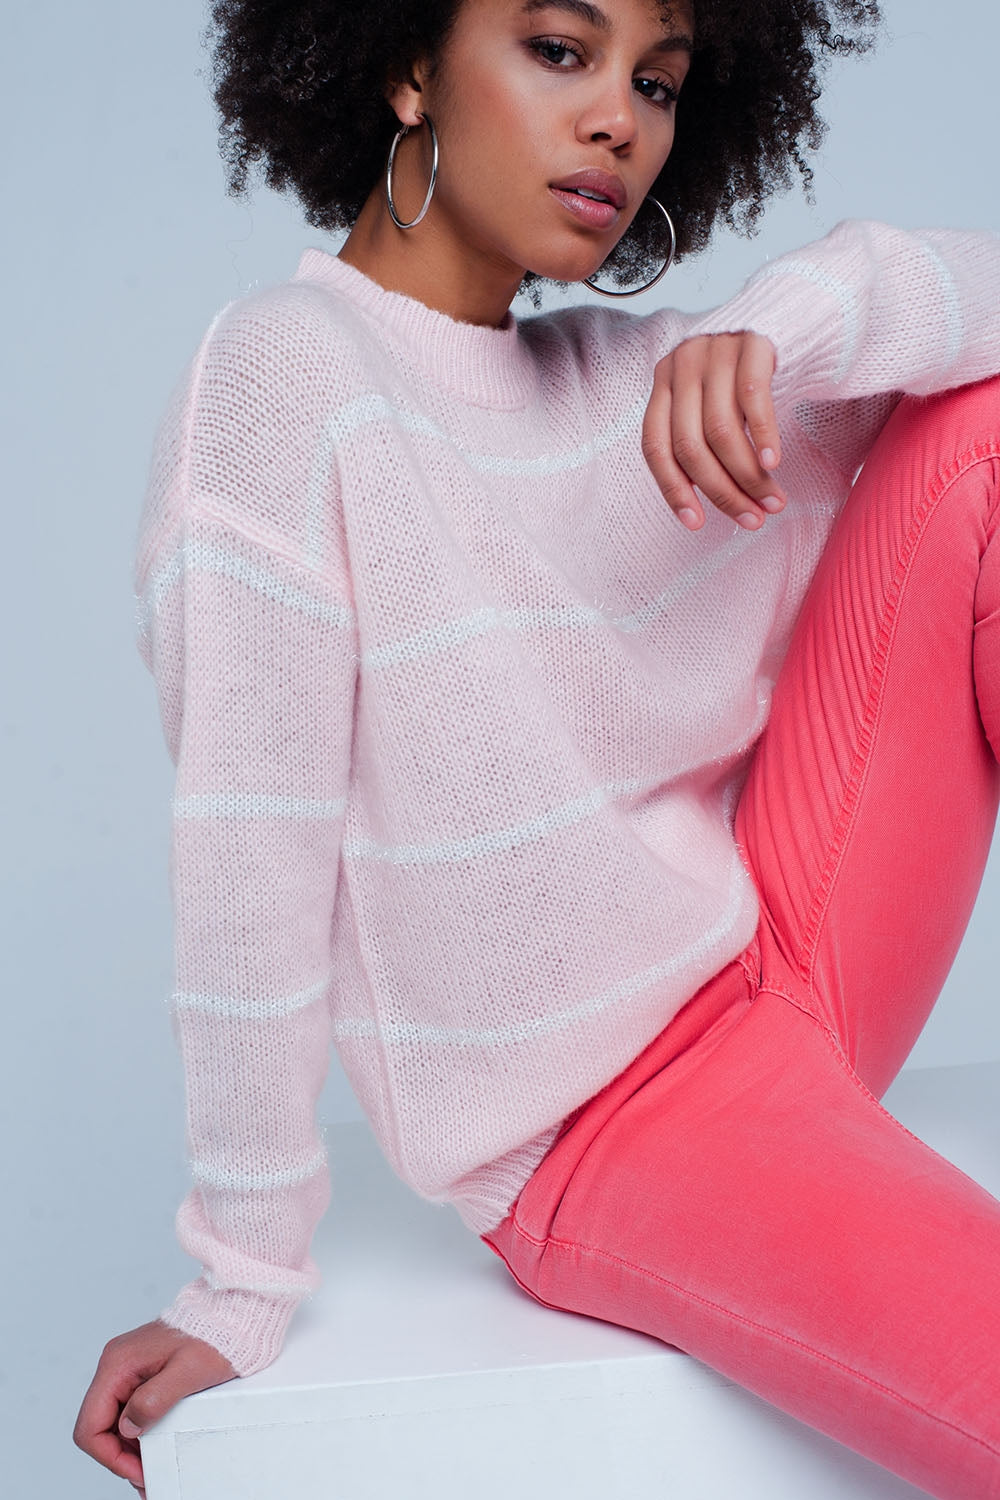 Pink Striped Crew Neck Sweater-Women - Apparel - Sweaters - Pull Over-Product Details Pink with white striped jumper of a very strong and soft mix of acryl wool and mohair fabrics. The pullover has a round closed neck and long sleeves with on the hip a metal pleated Q2 logo attached.-Keyomi-Sook